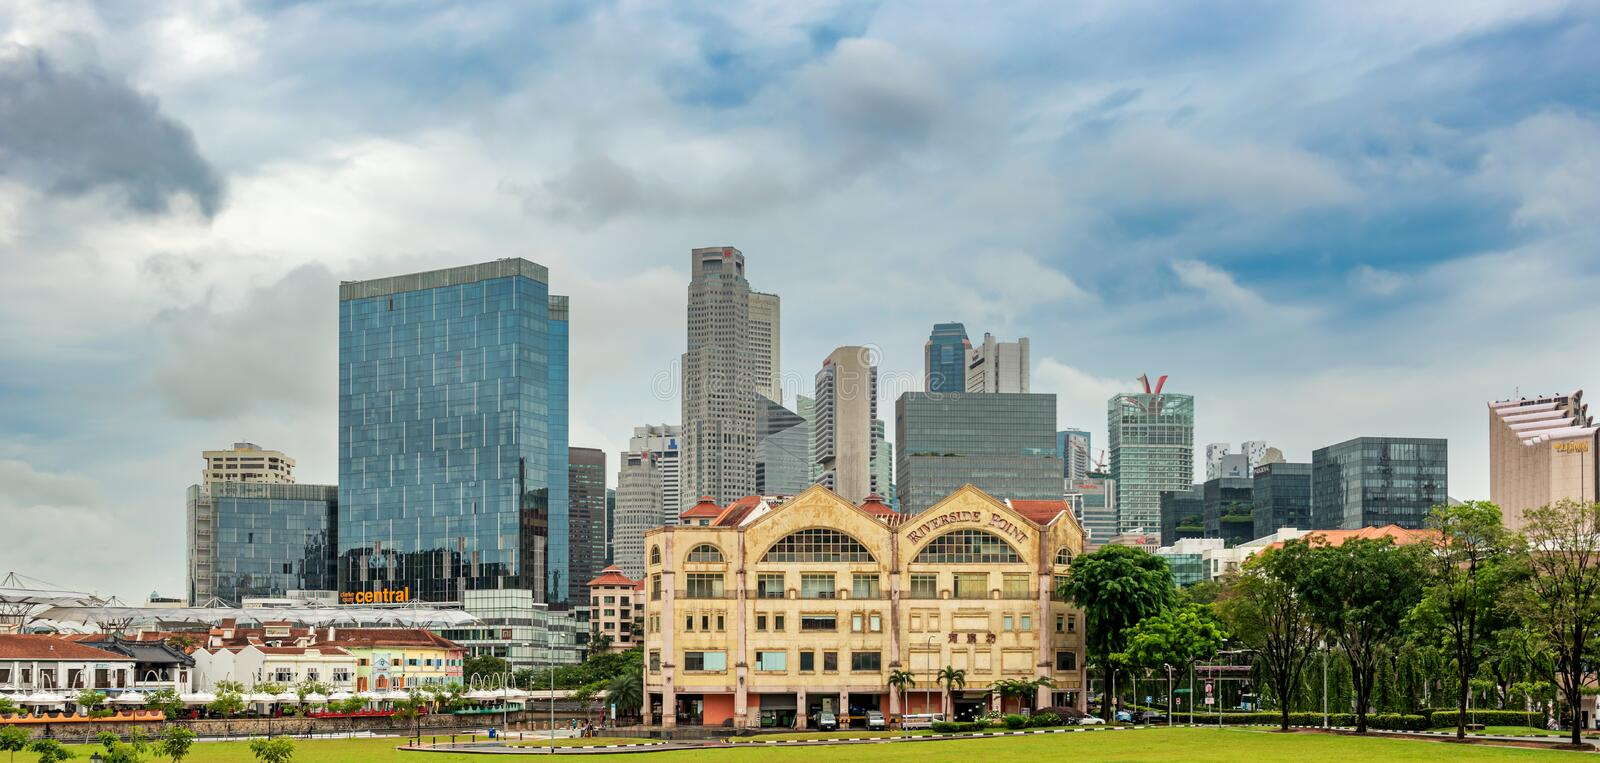 Clonial houses at the Singapore river and the cityscape. Singapore - Jan 11, 2018: Old colonial houses at Singapore River and the downtown core high rise stock photography